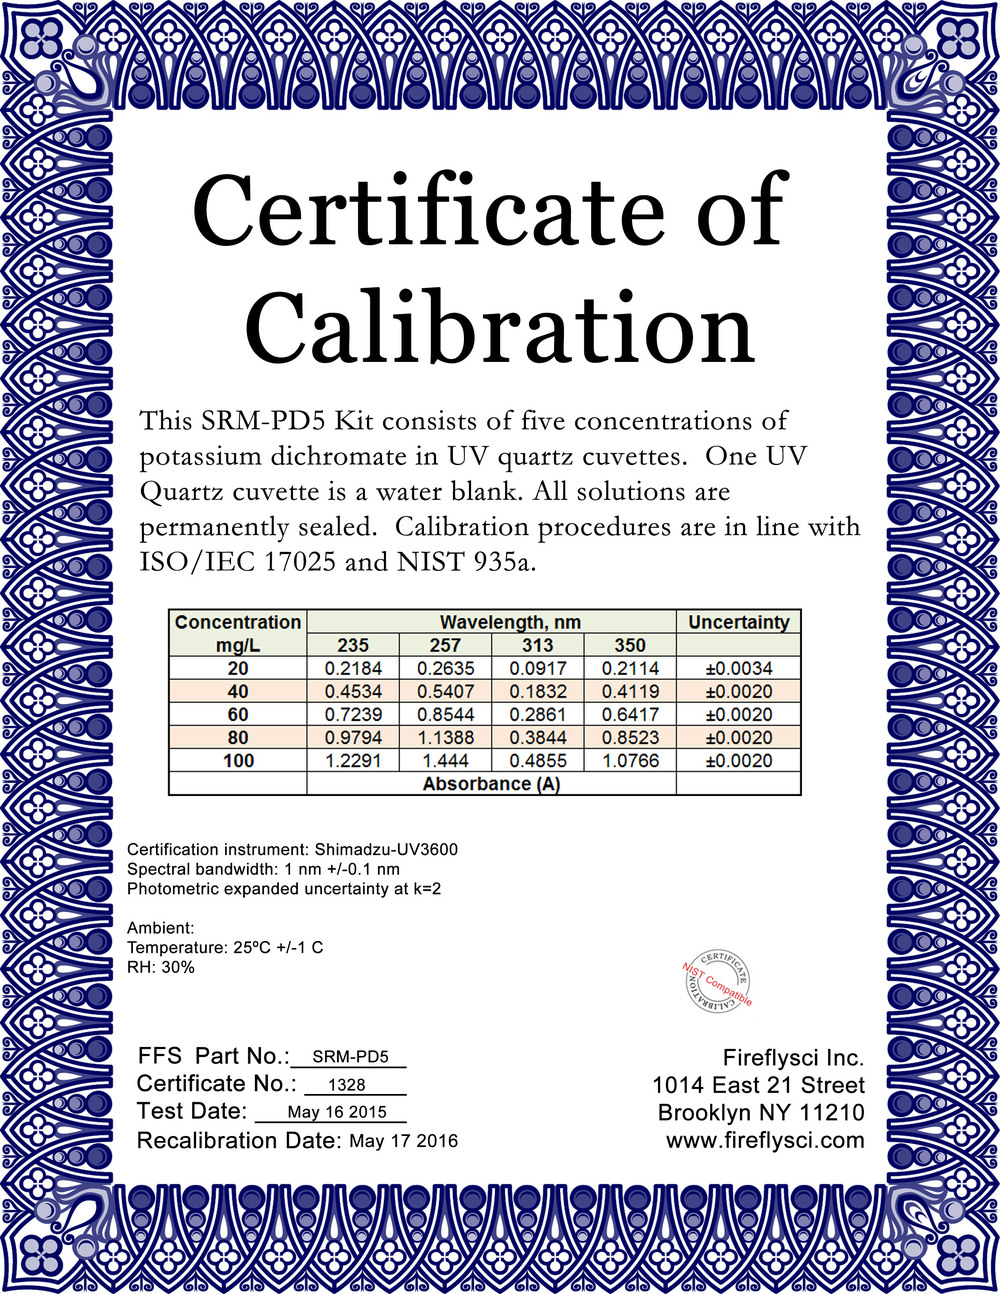 SAMPLE POTASSIUM DICHROMATE CERTIFICATE OF CALIBRATION